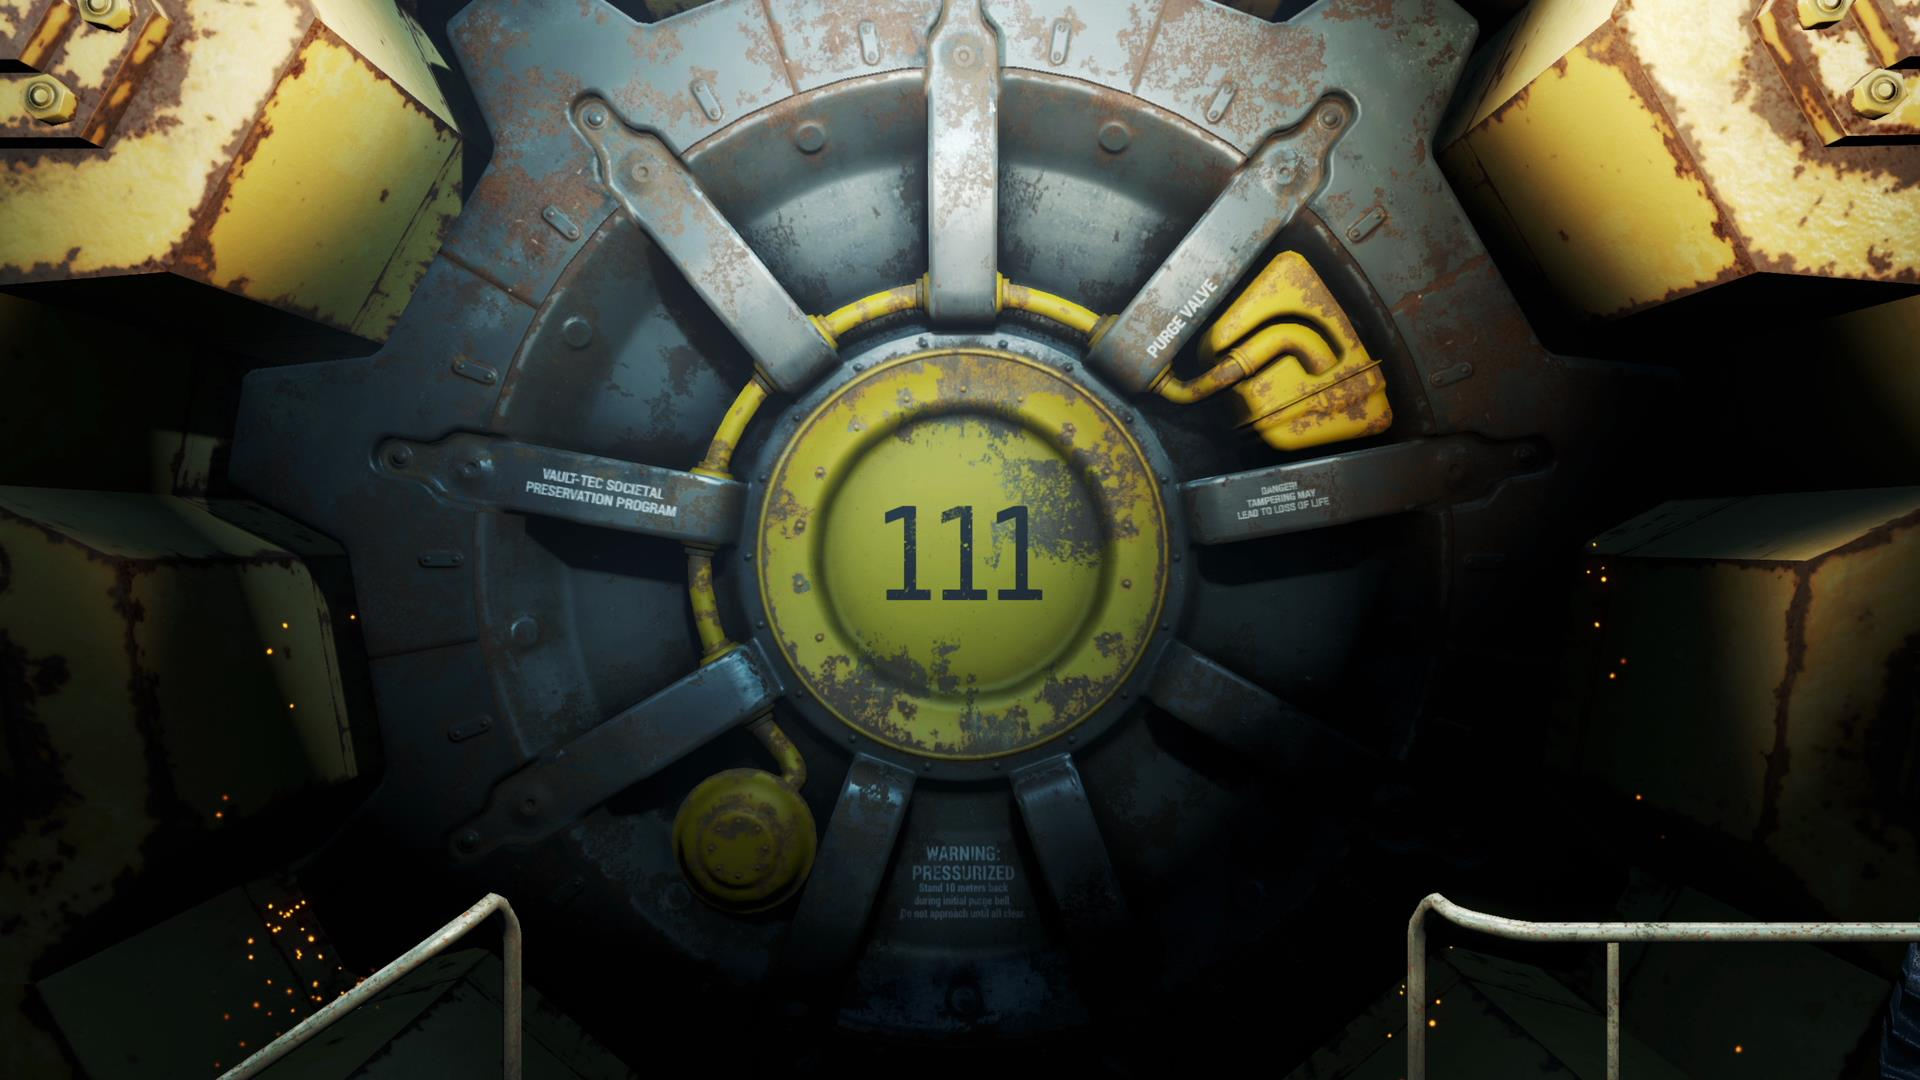 Fallout 4 Release Date Confirmed, Launching This November On Consoles And PC